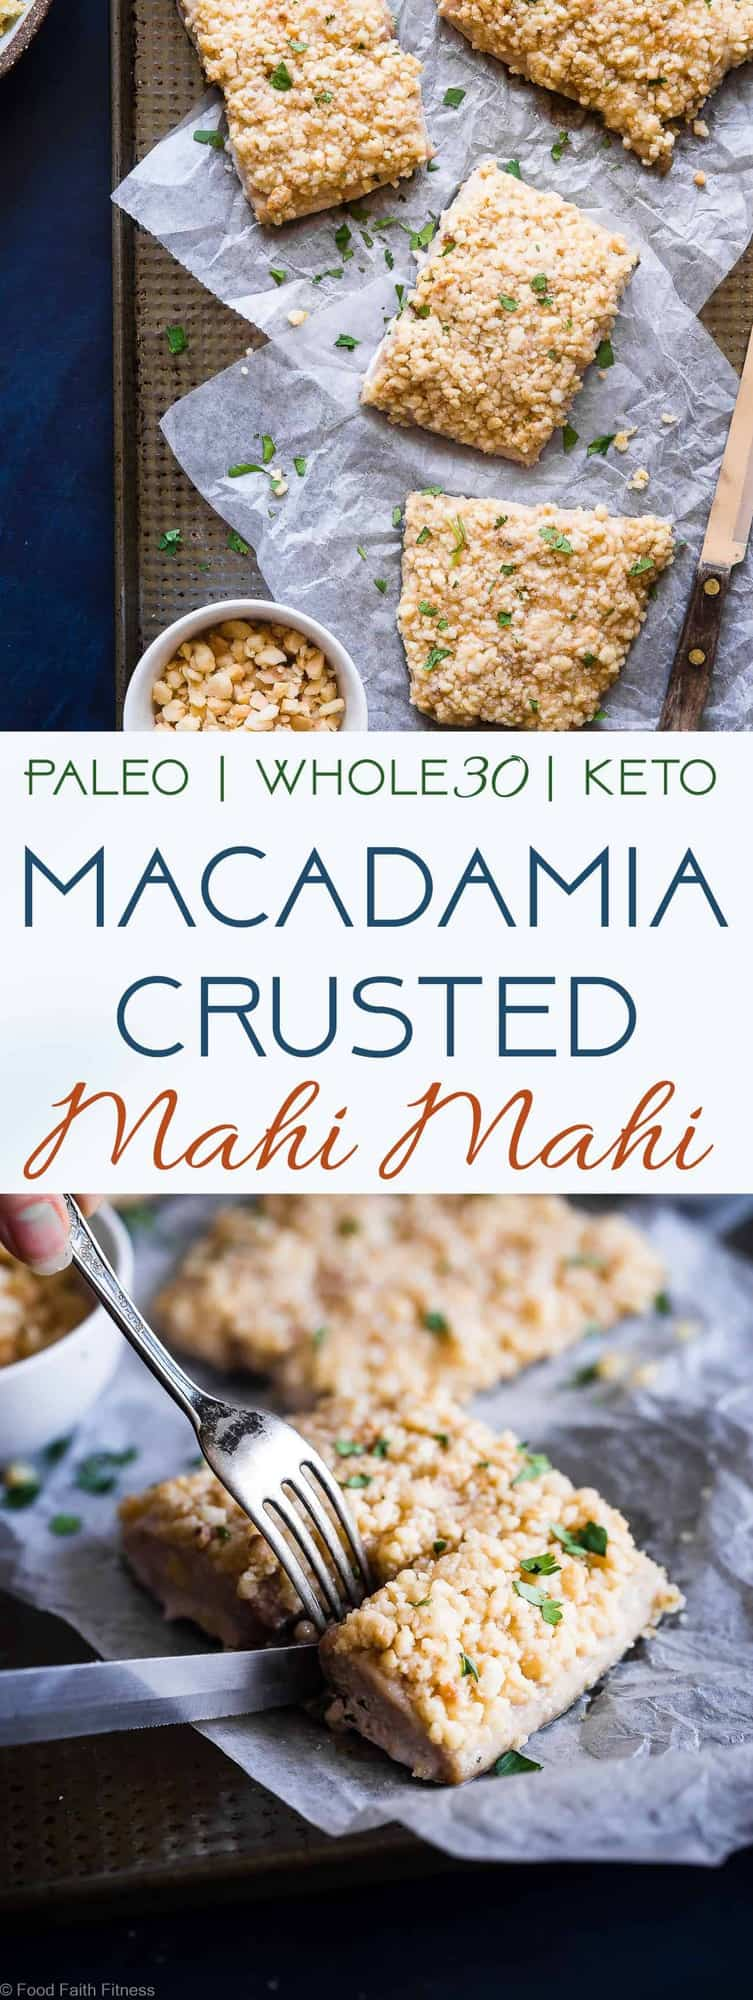 3 Ingredient Macadamia Nut Mahi Mahi - This oven baked mahi mahi is aquick and easy healthy dish with only 3 ingredients! Keto, Whole30 and paleo friendly and SO tasty! You definitely want this recipe in your back pocket for busy weeknights! | #Foodfaithfitness | #Whole30 #Paleo #Healthy #Glutenfree #Keto